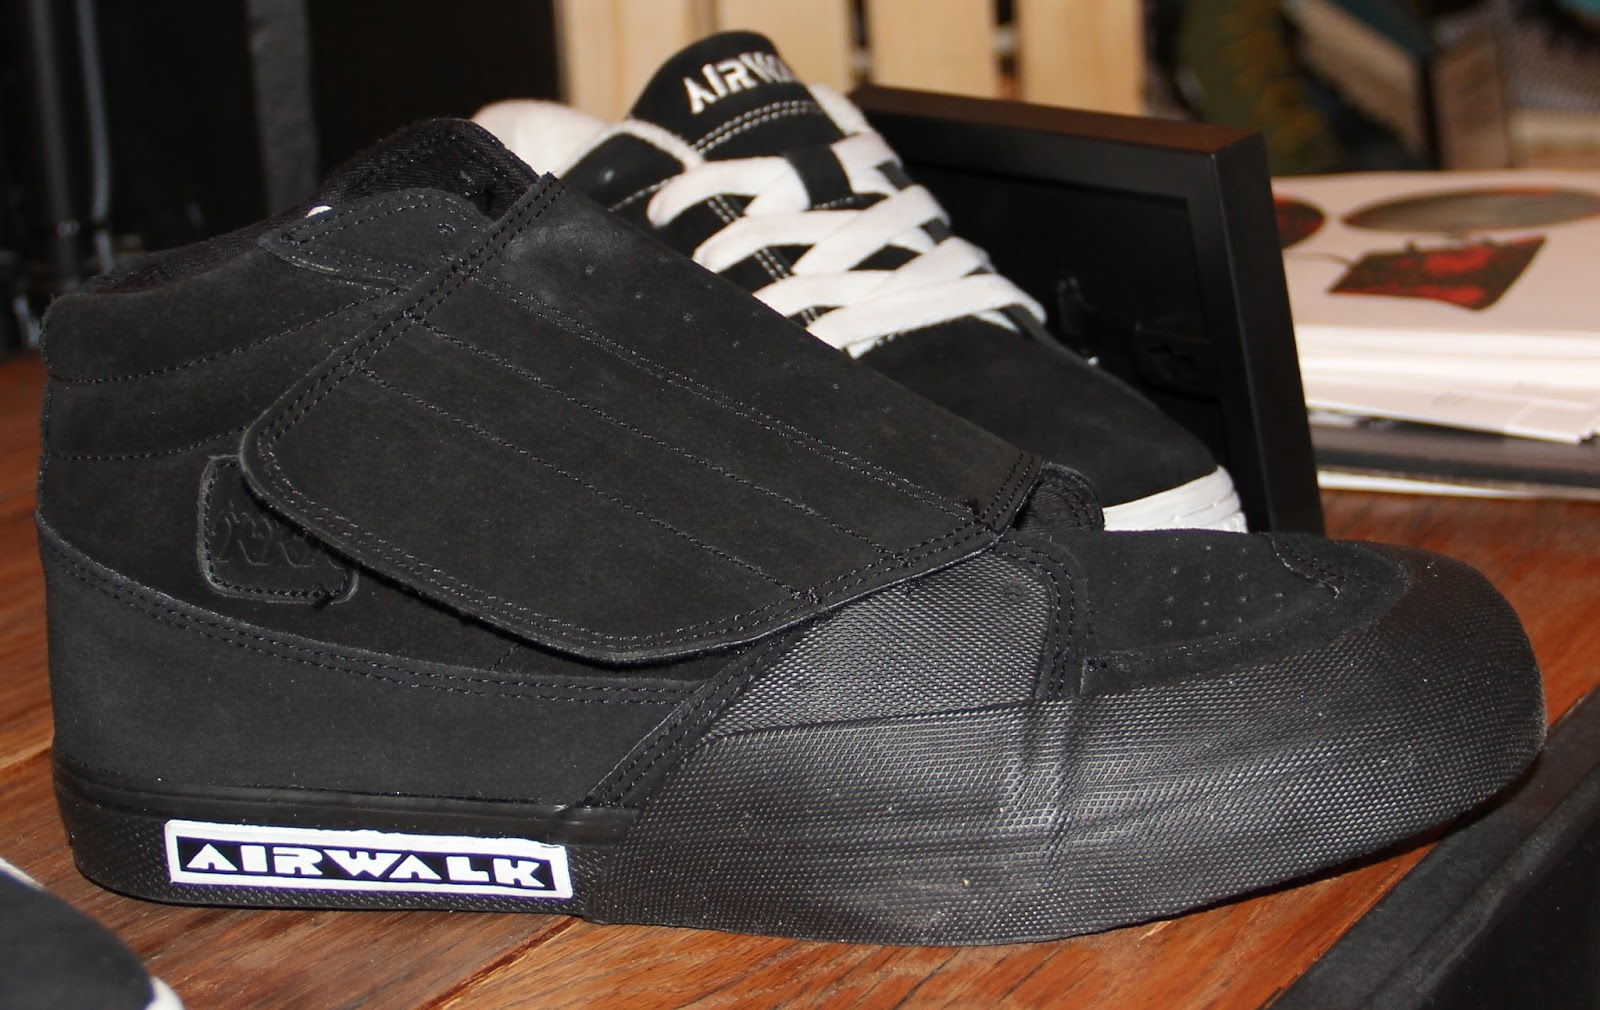 new velcro closure-the reissued VIC-available now-style from 1987-suede  upper 534bcff8fb3